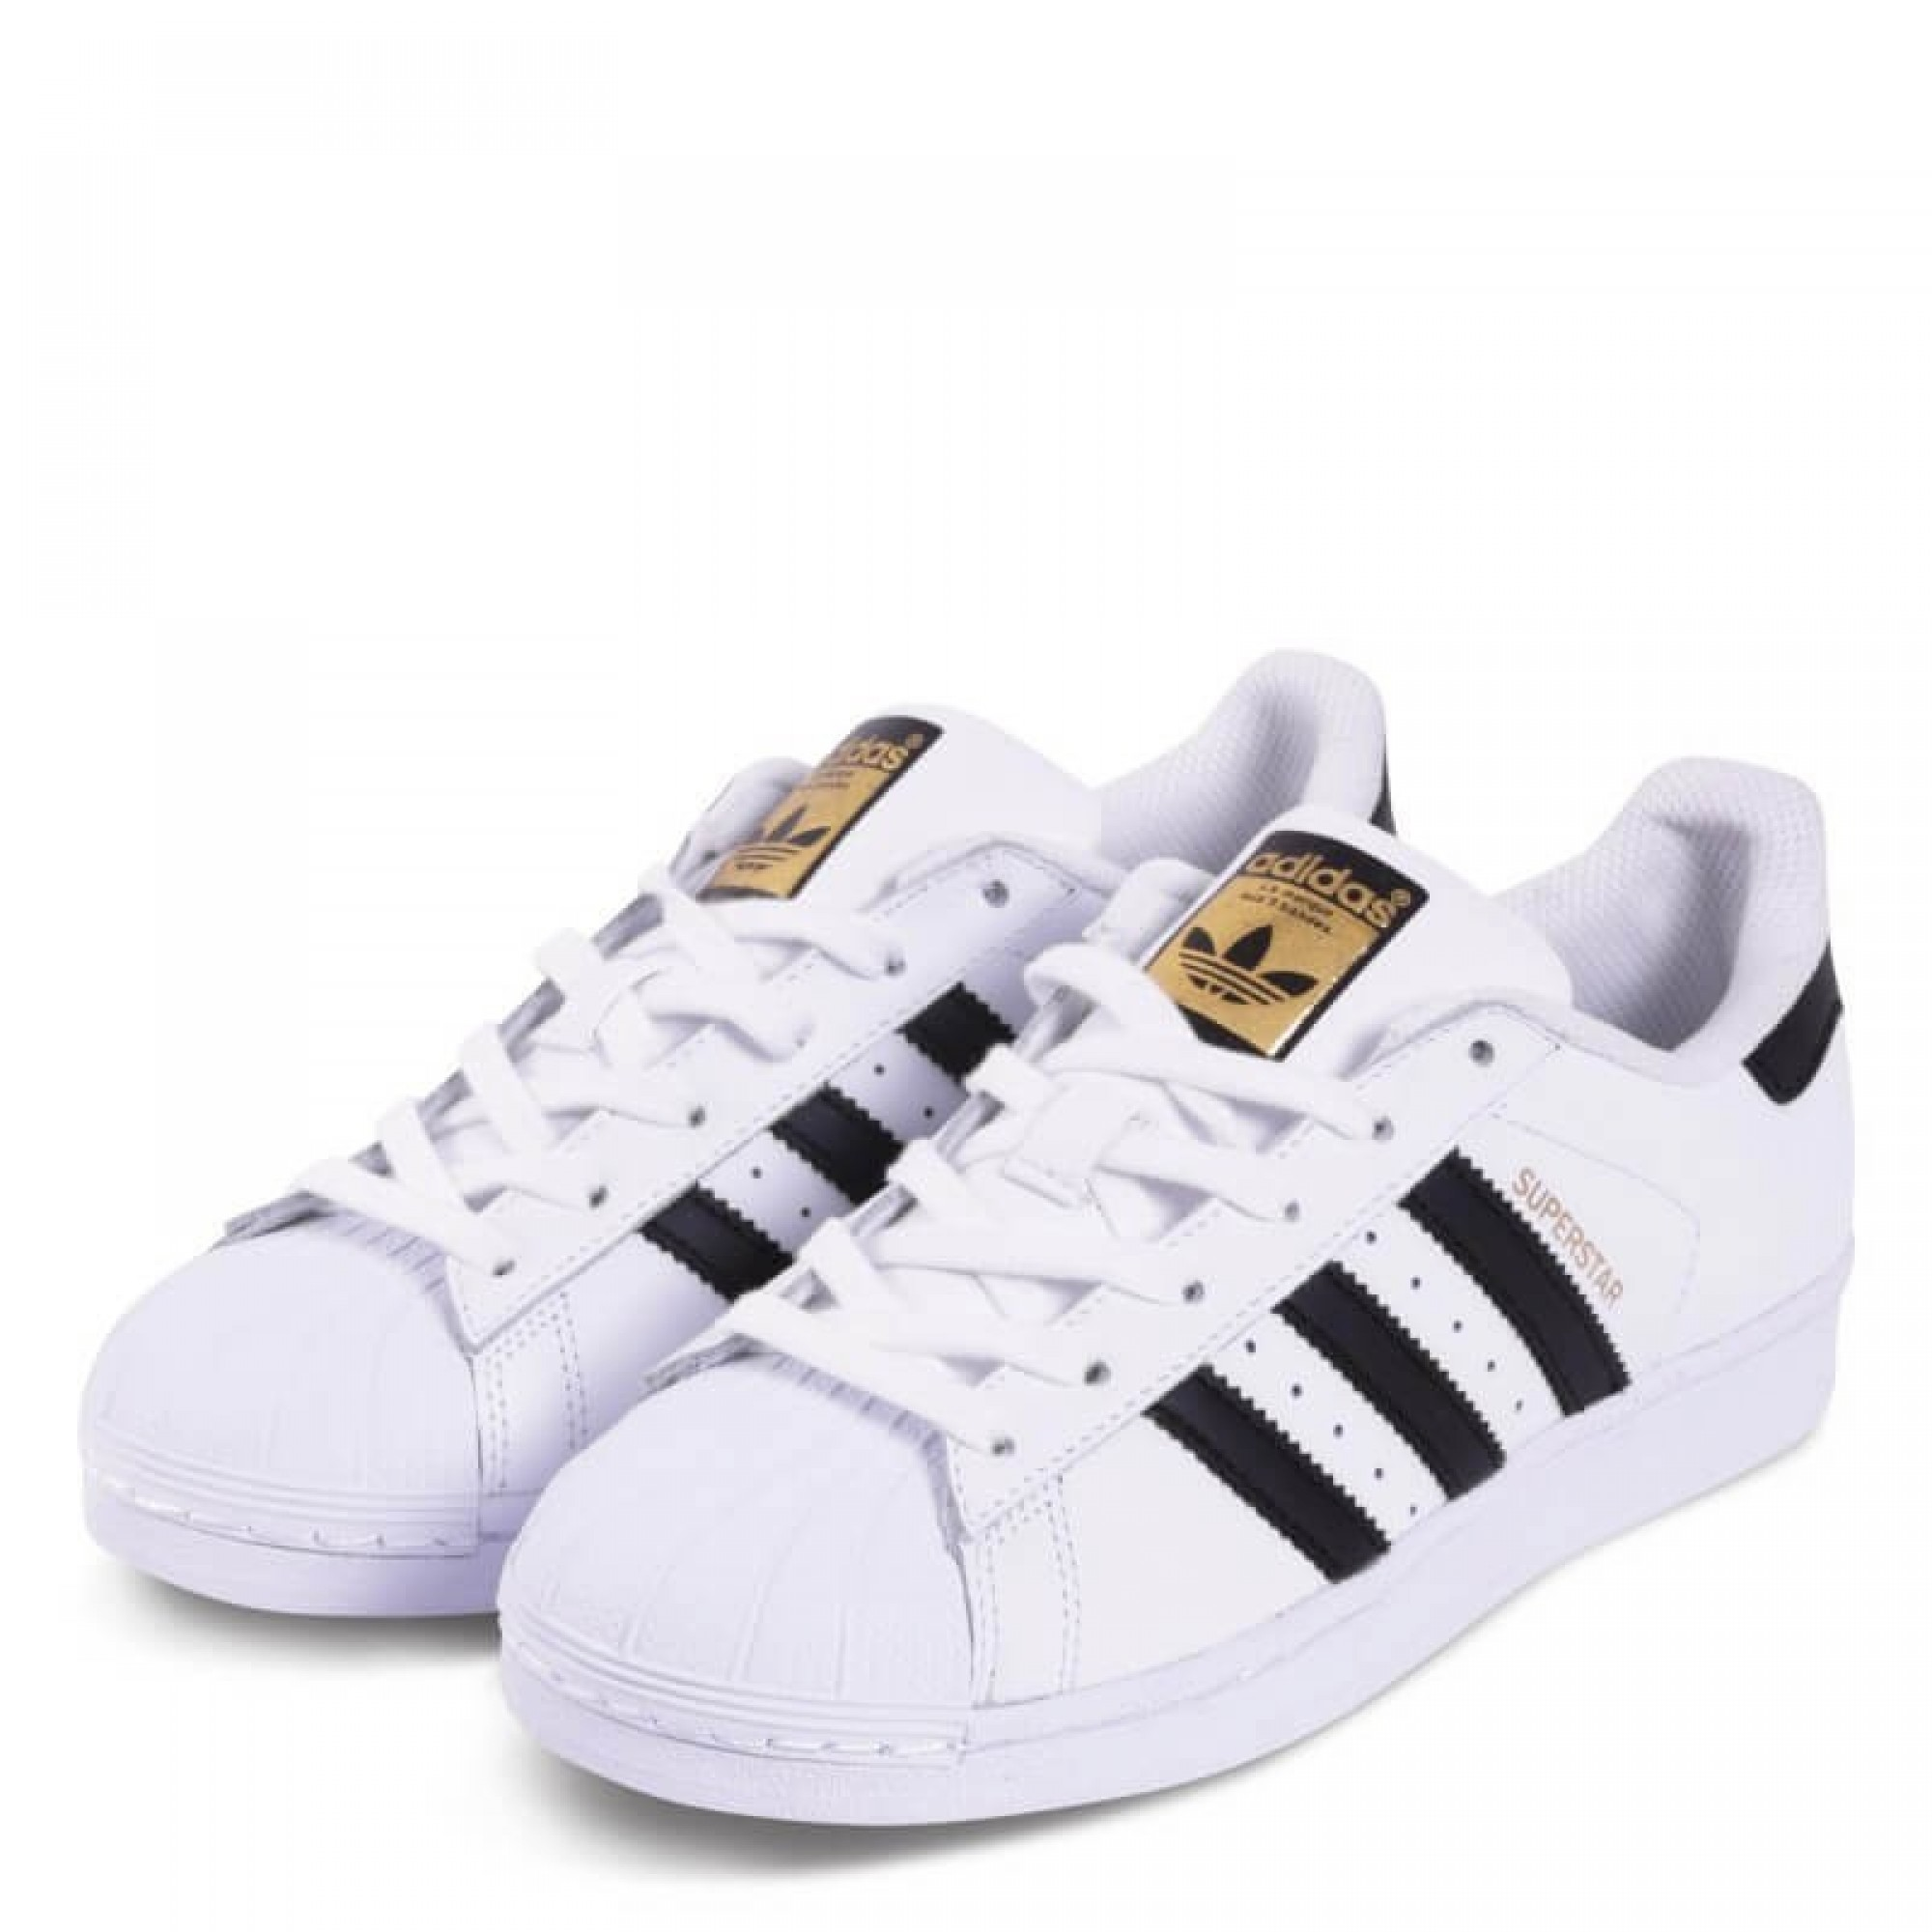 f34826a417 Women s Adidas Originals Superstar C77124